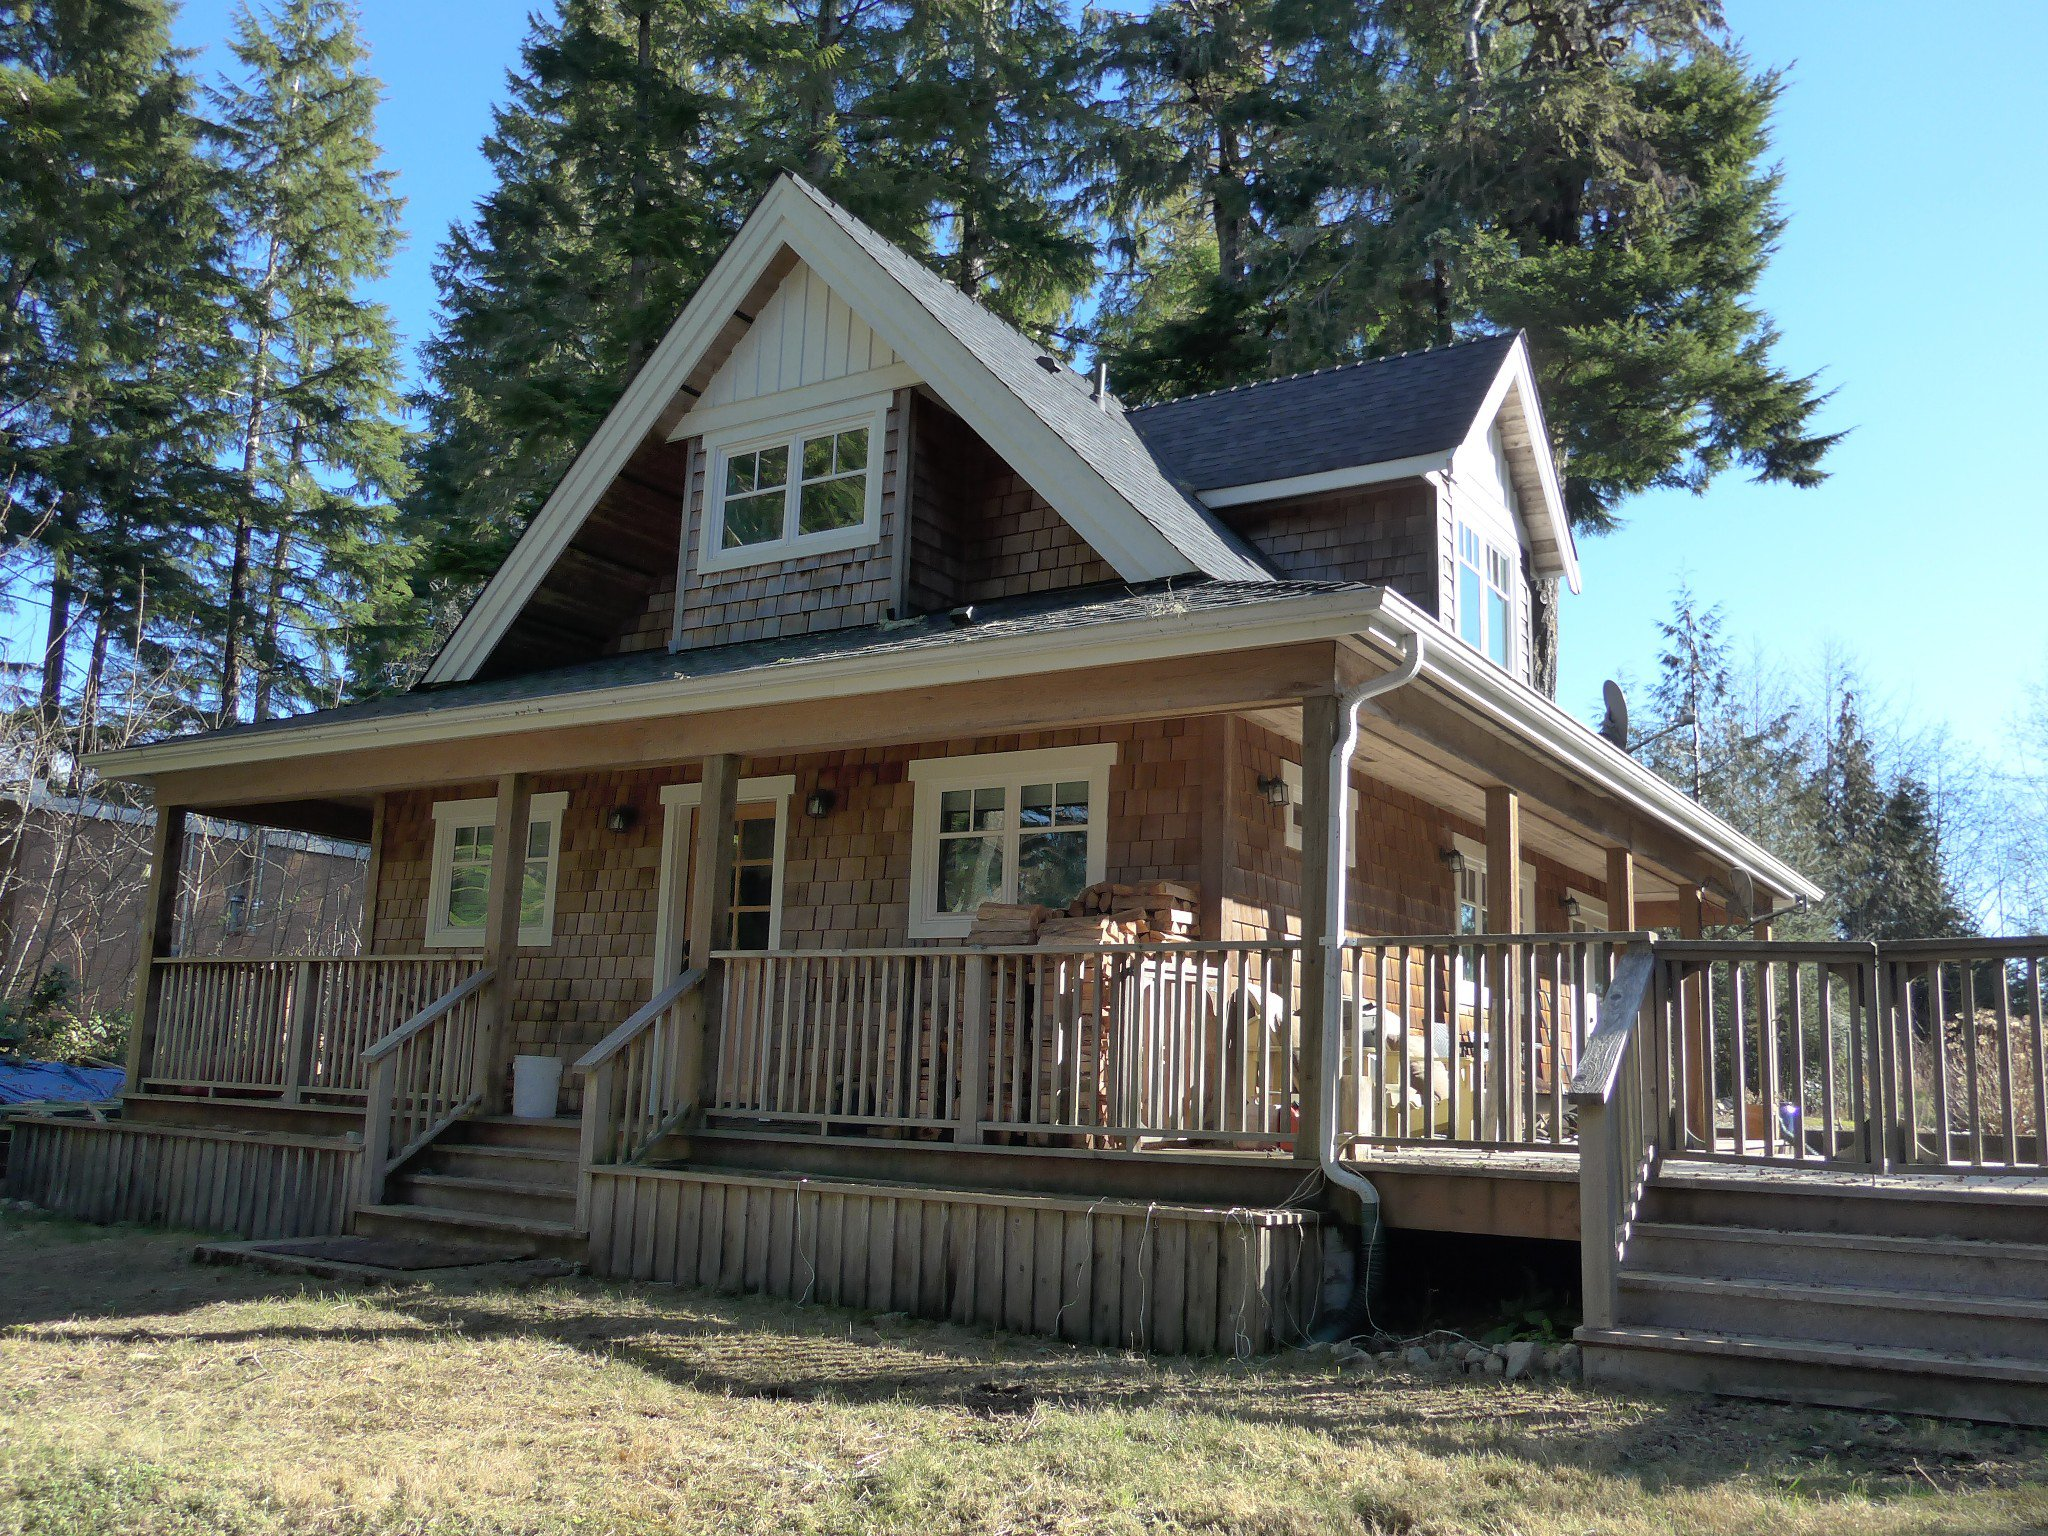 Main Photo: 194 Cape Beale Trail: Bamfield House for sale (Port Alberni)  : MLS®# 451551